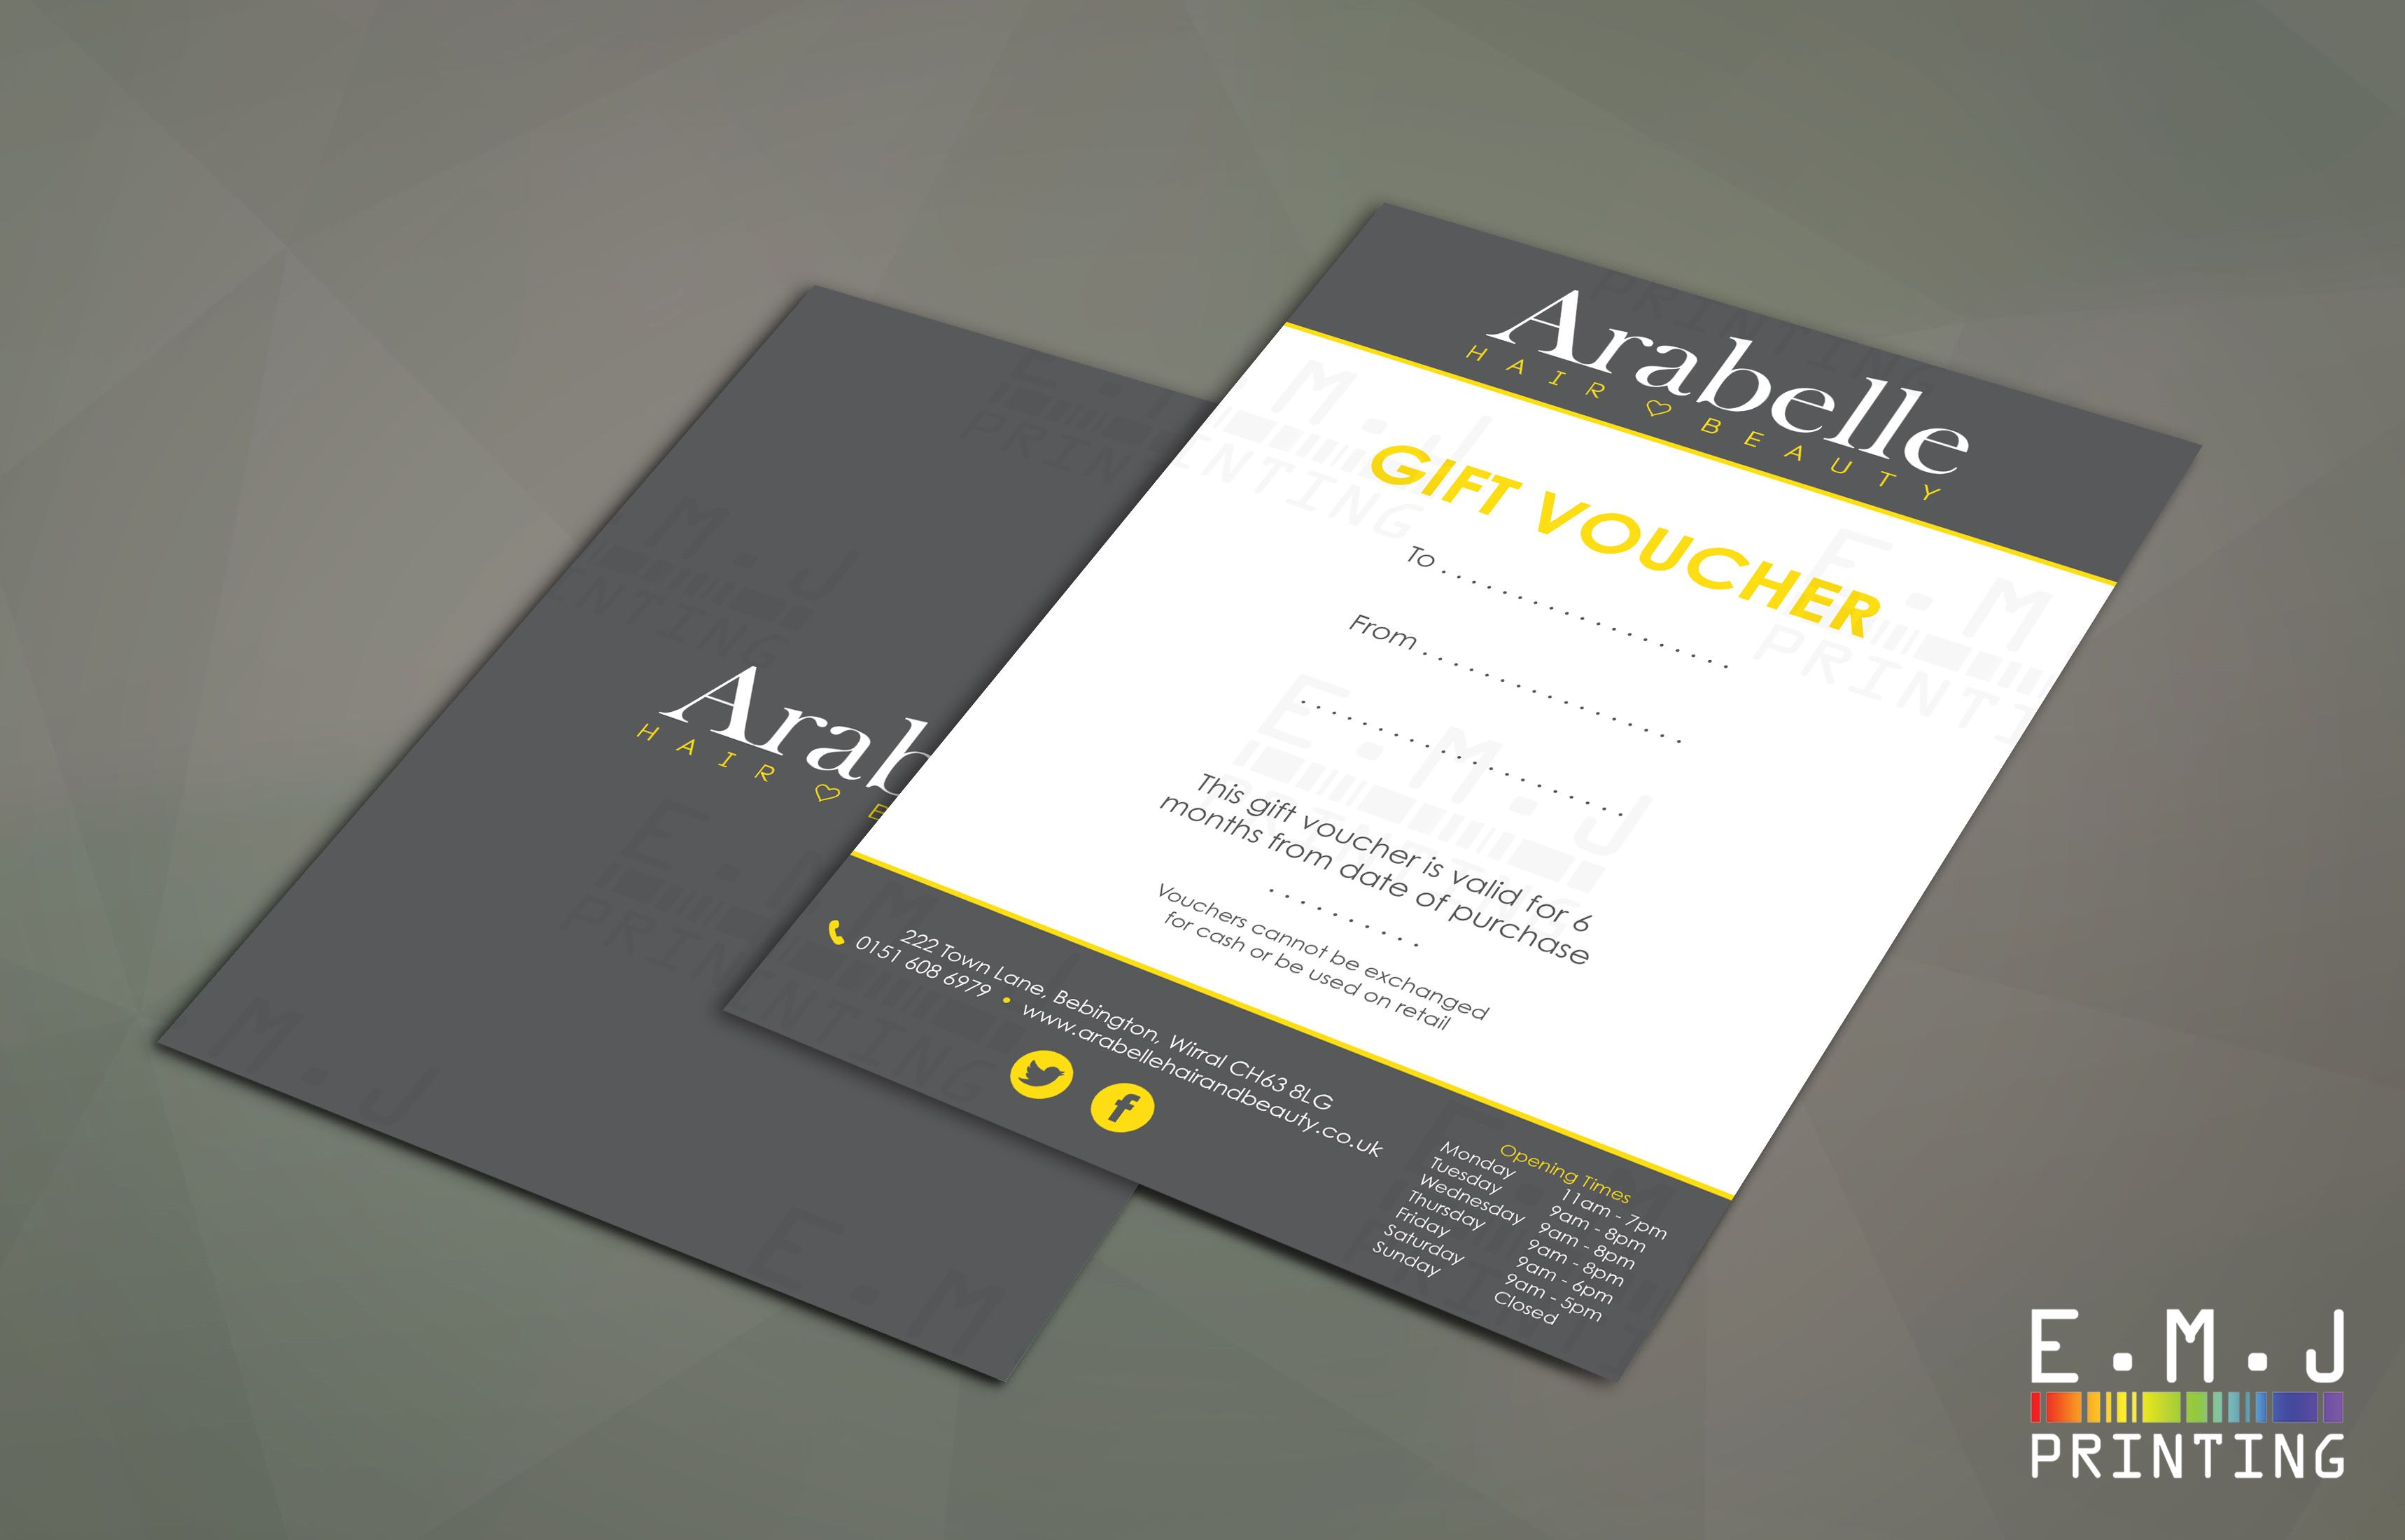 an a5 gift voucher designed for arabelle hair and beauty and printed